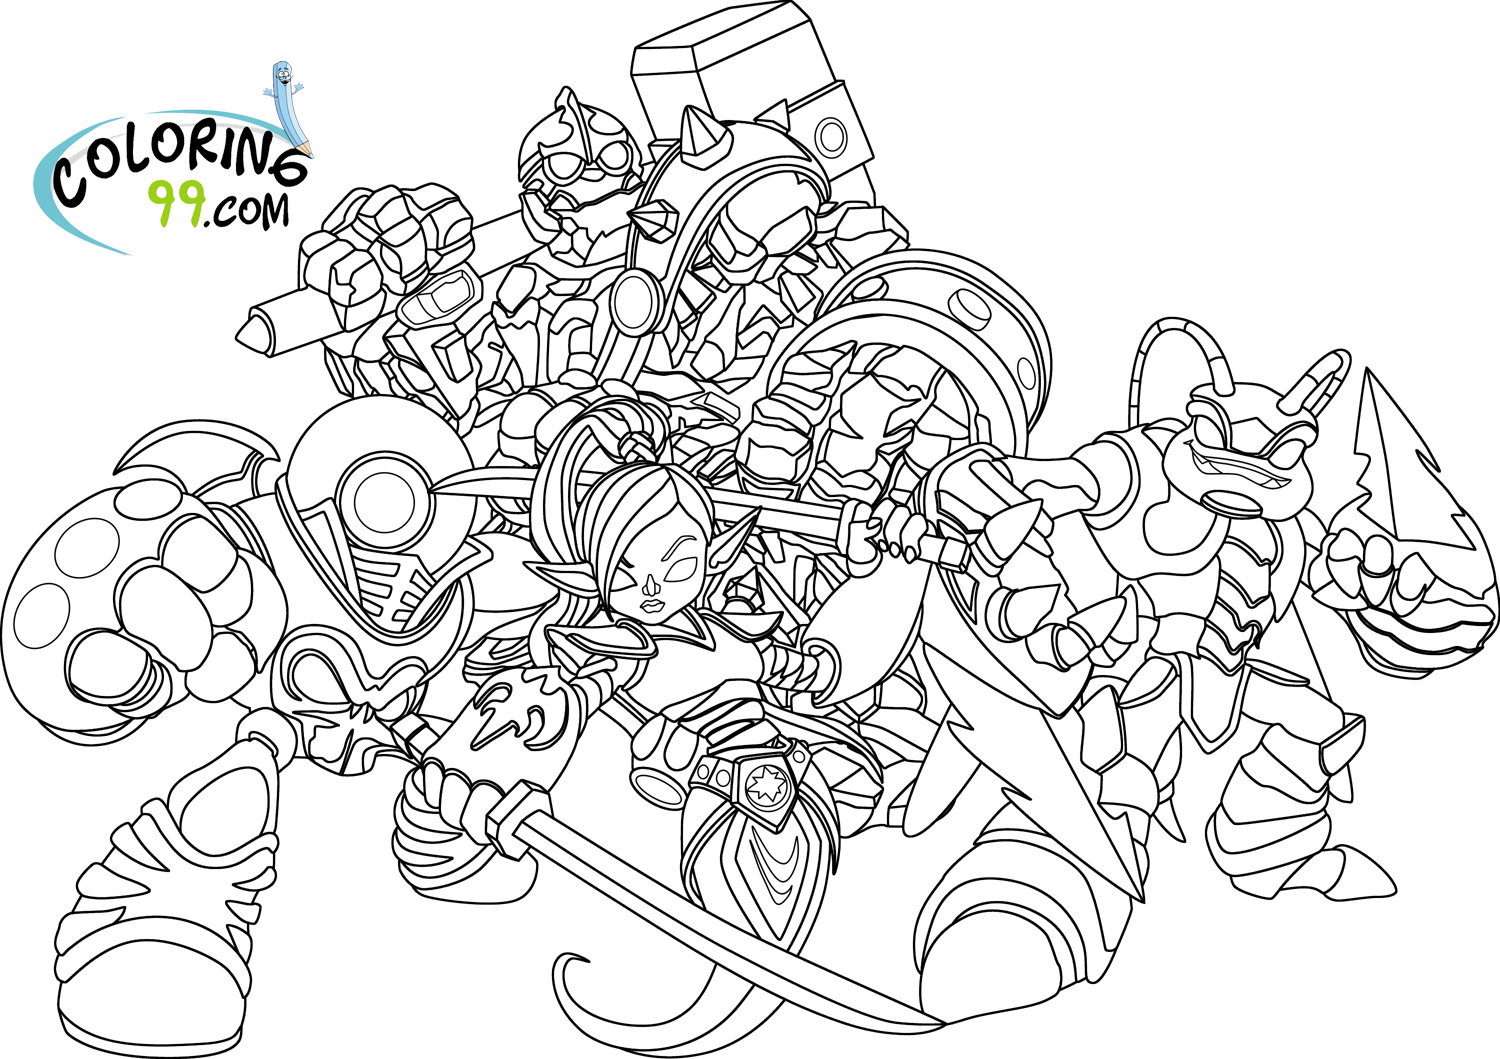 Skylanders giants coloring pages team colors - Coloriage skylanders giants ...